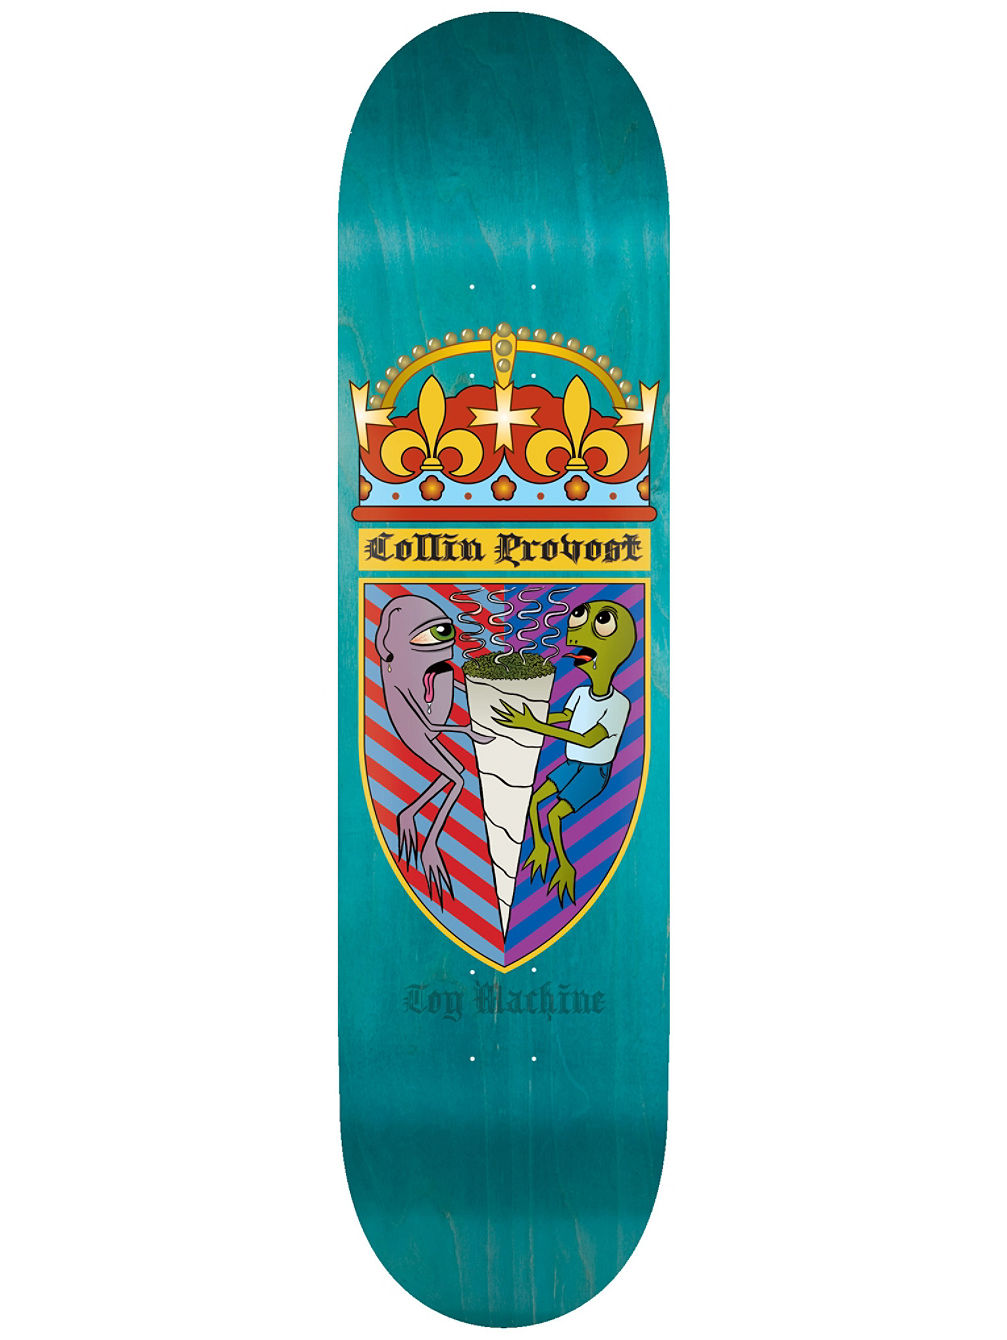 Provost Cone Of Arms 8.5 Skate Deck